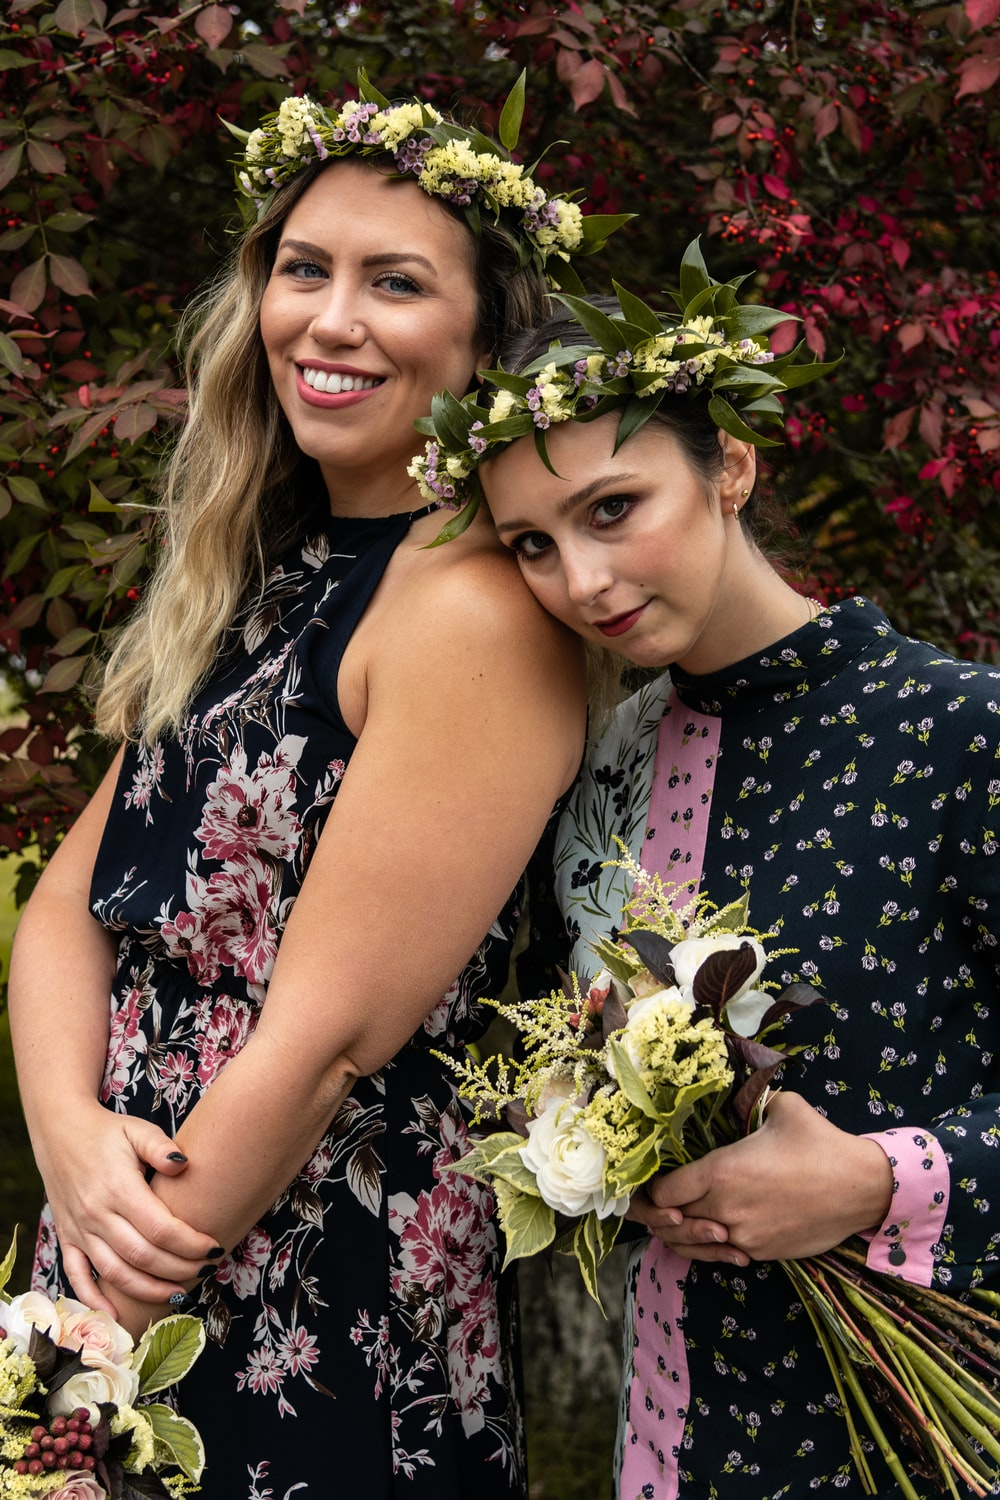 two woman wearing black floral dresses